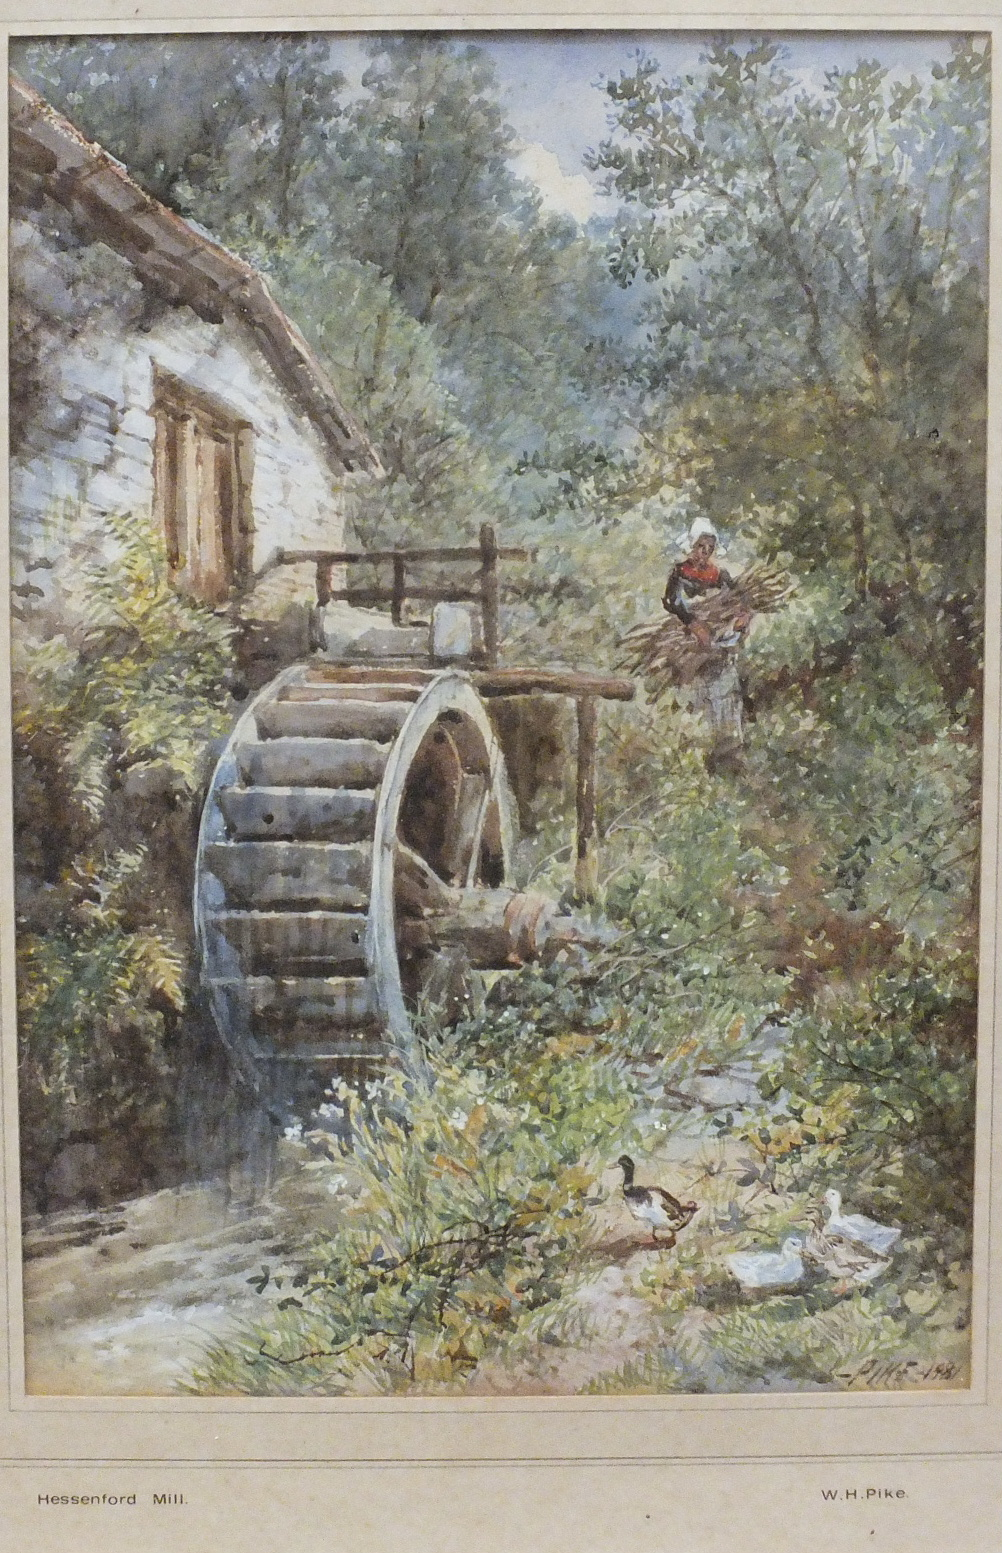 Lot 76 - William Henry Pike (1846-1908) HESSENFORD MILL Signed watercolour, dated 1881, titled on mount, 34 x